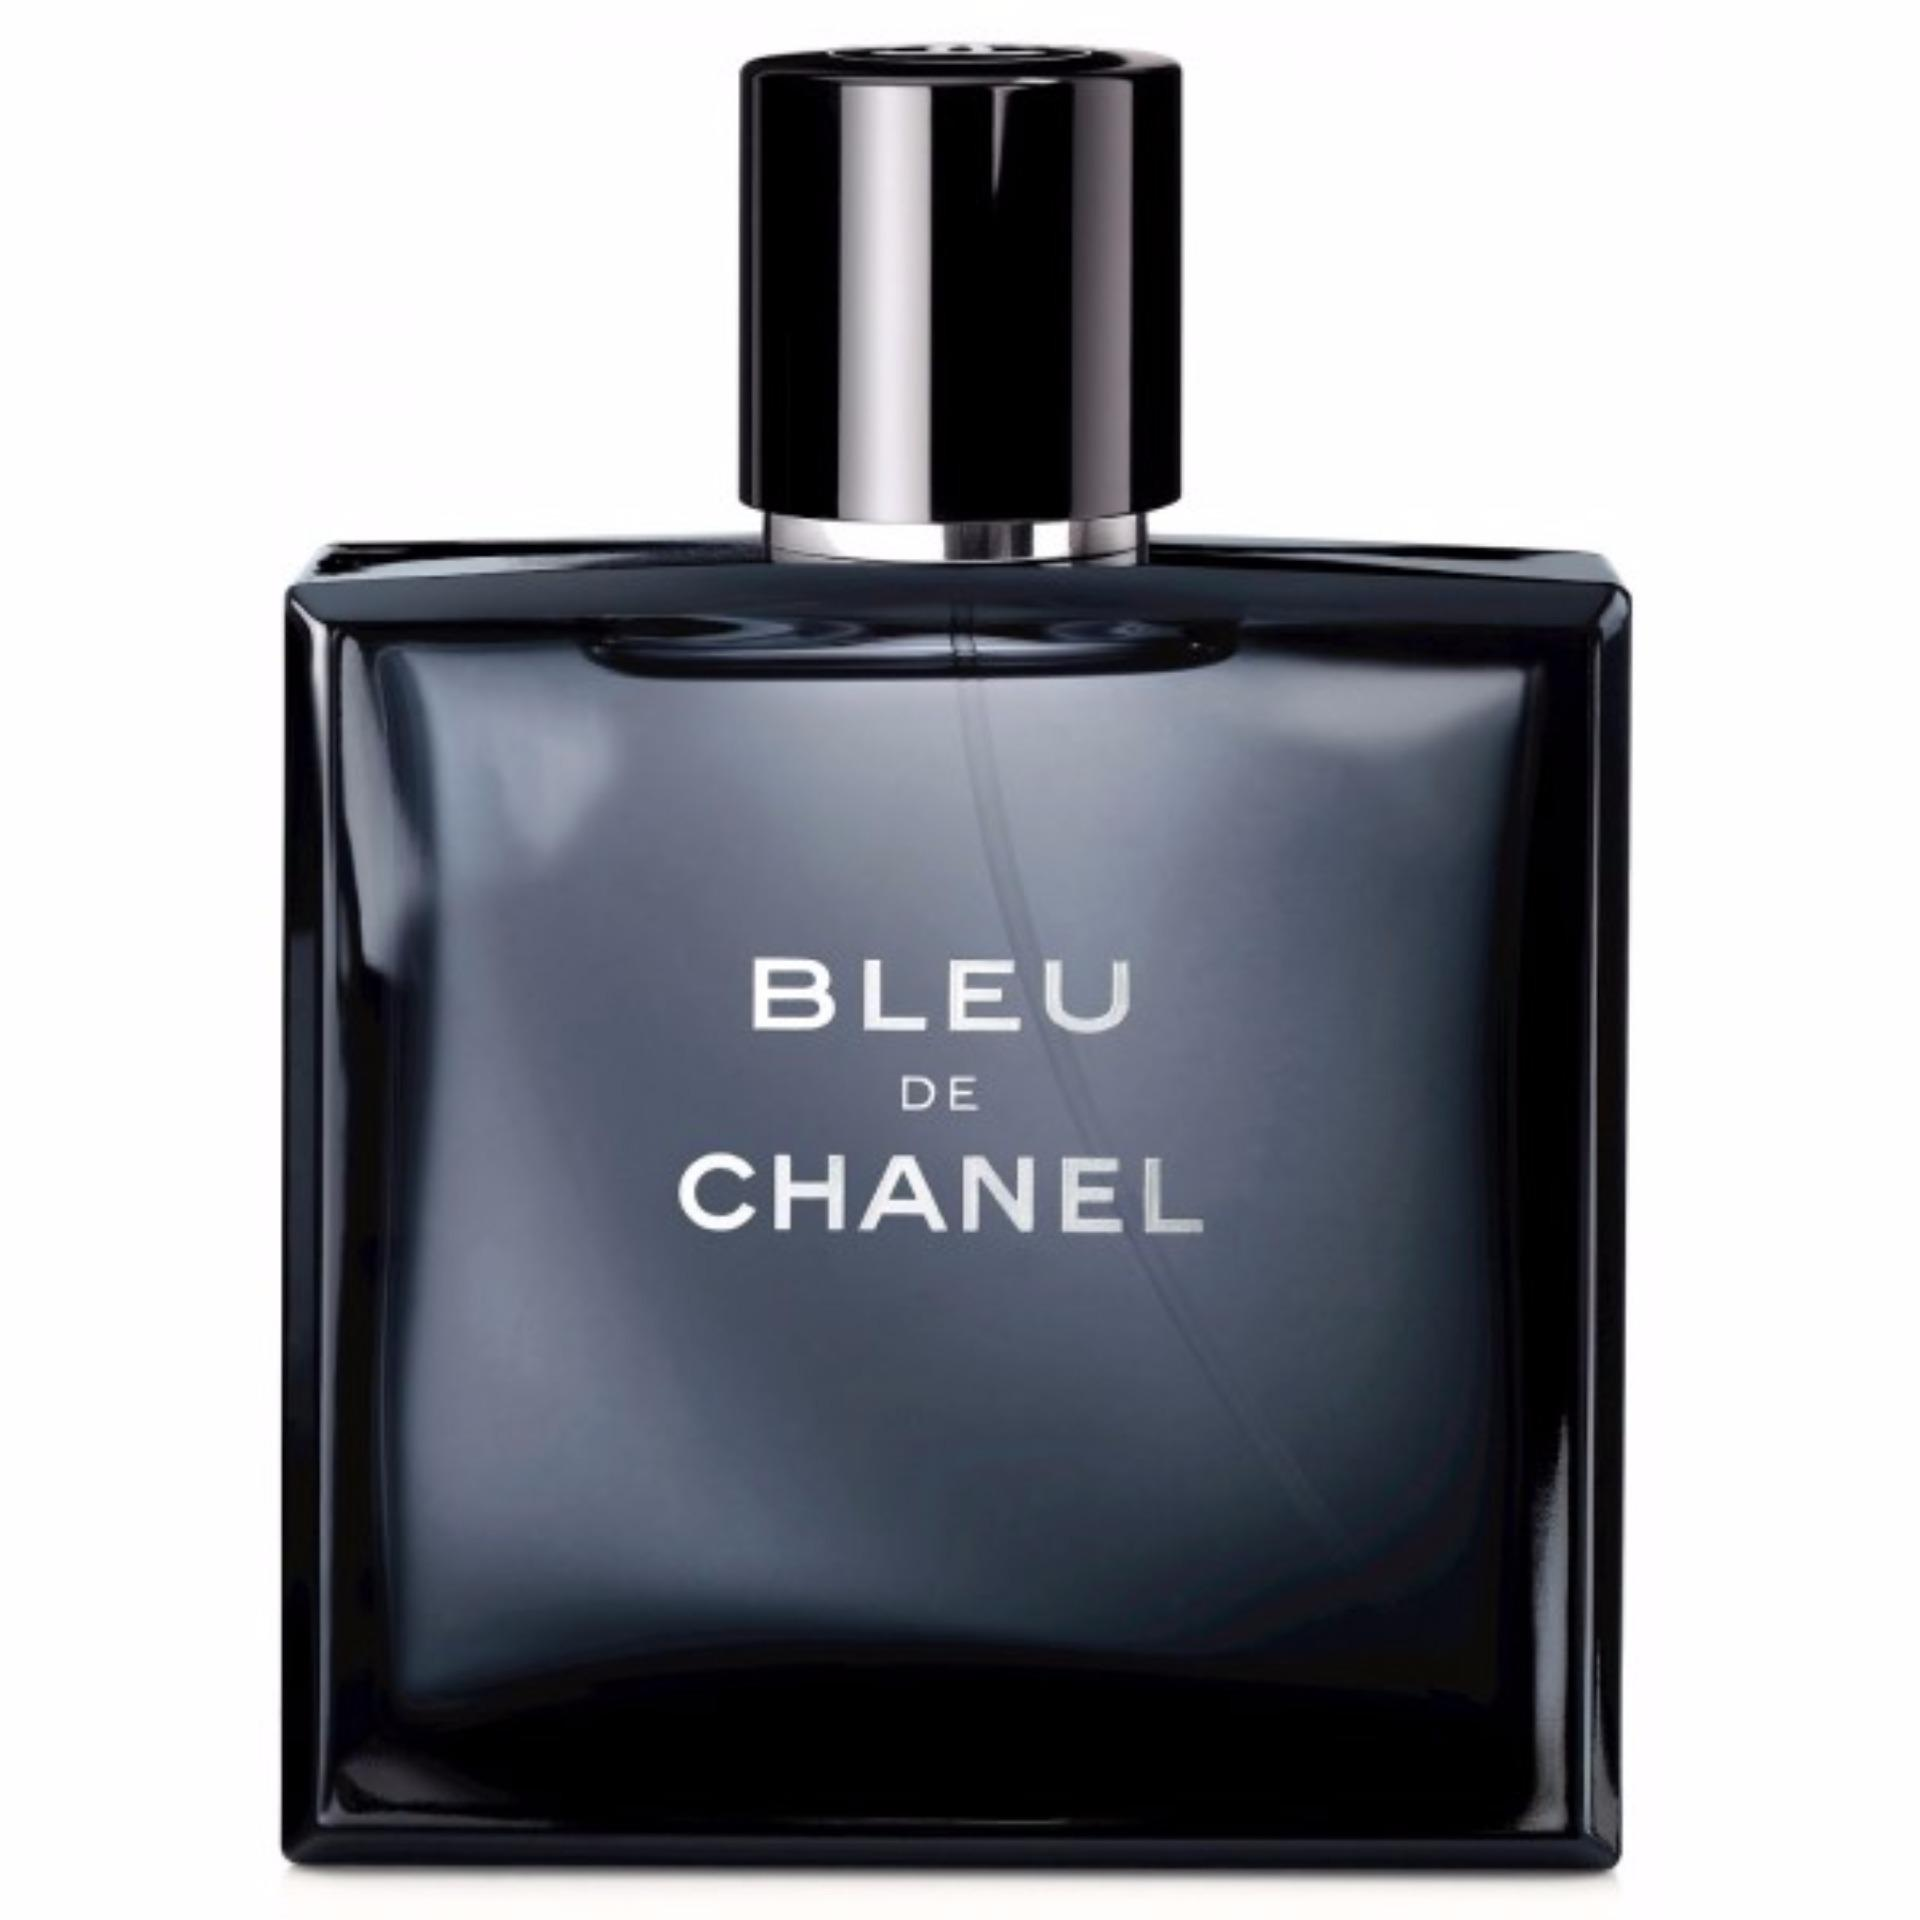 Bleu De Chanel Eau De Toilette For Men 100ml Tester